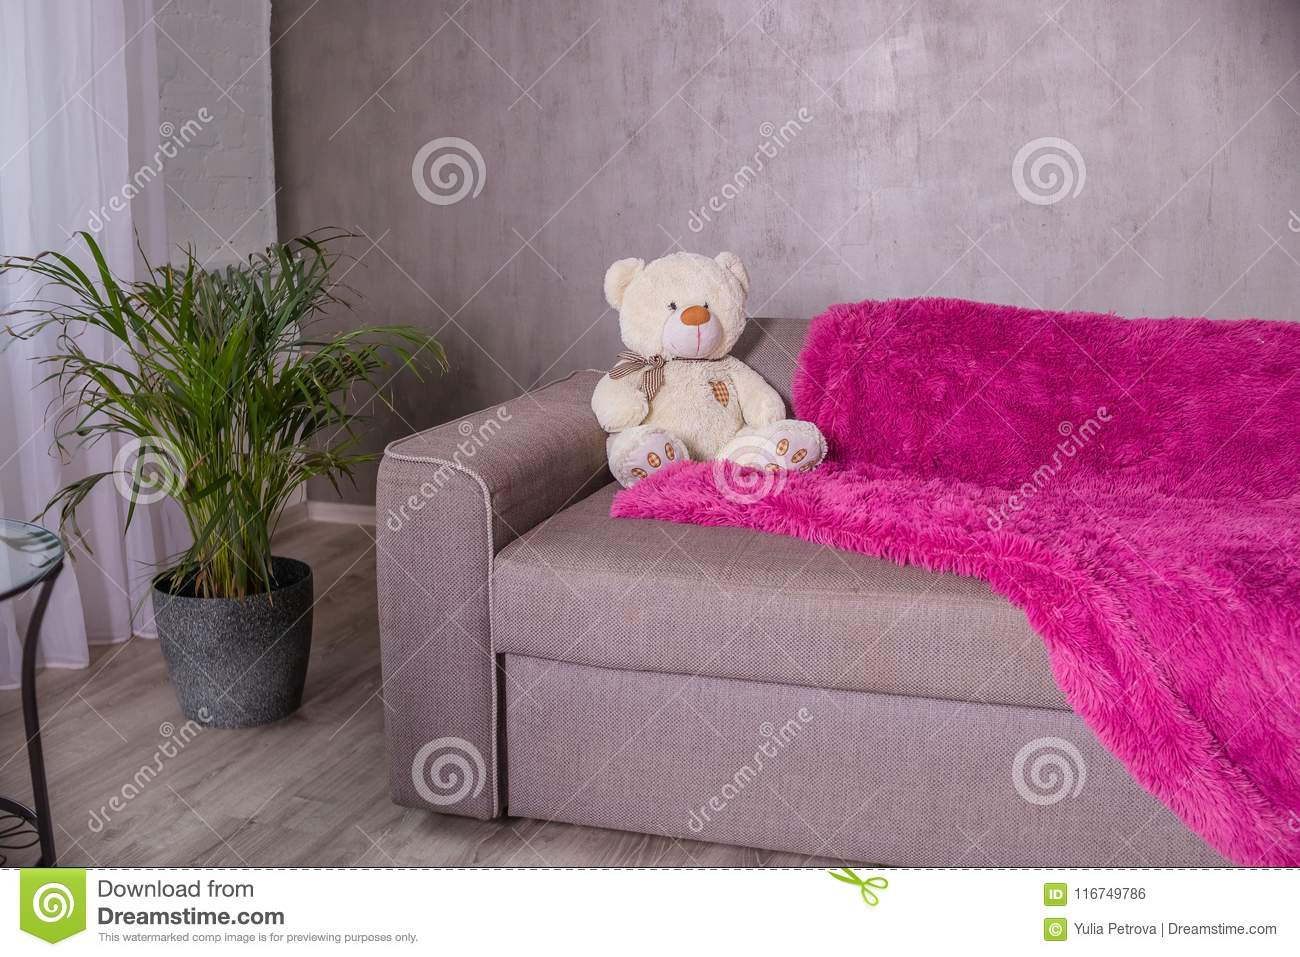 Download Teddy Bear   Sitting On Sofa Couch With Purple Blanket, Plaid. Palm  Tree